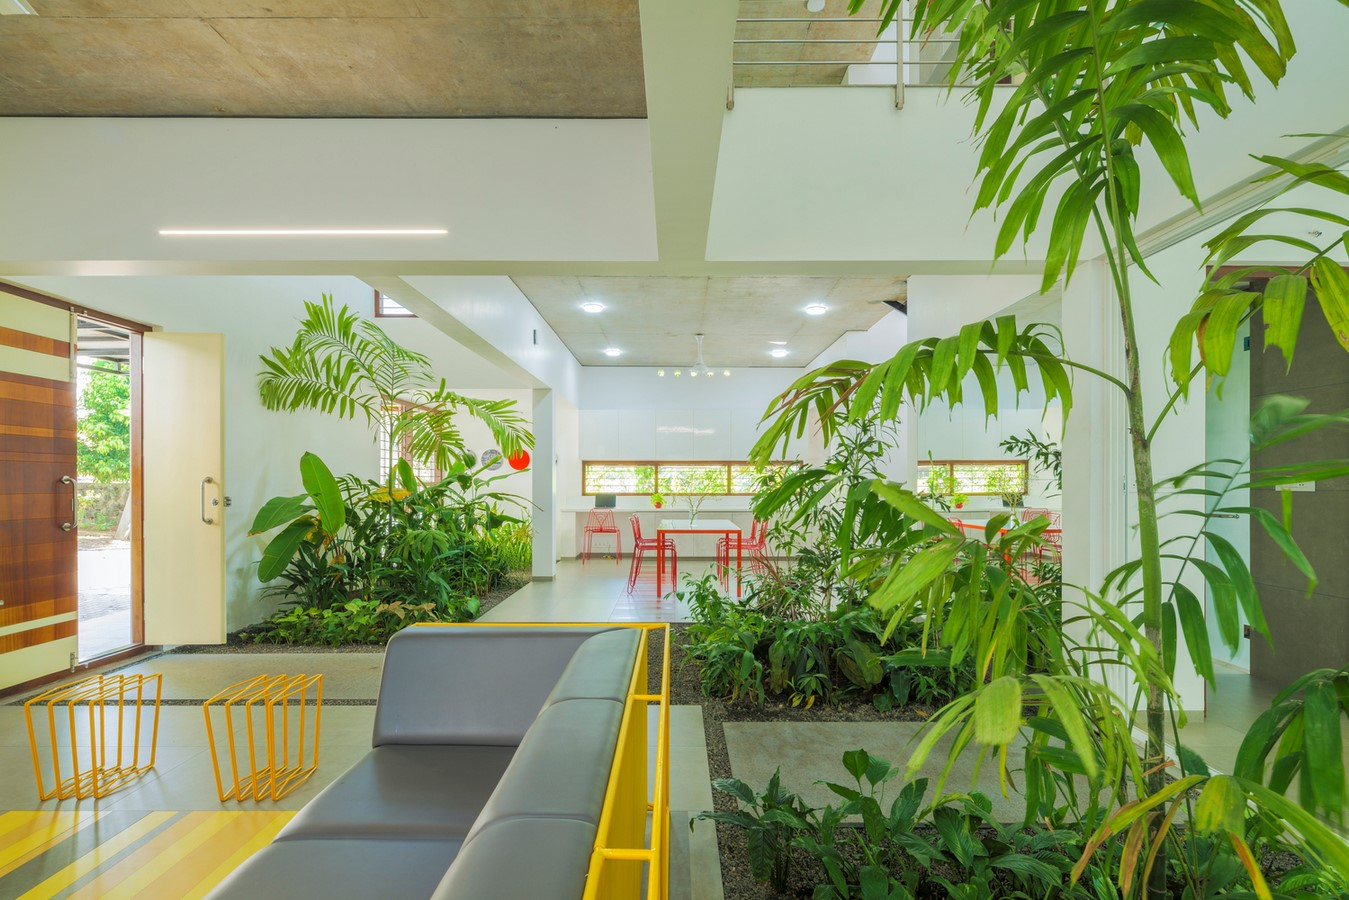 6 Things you did not know about Biophilic Design - Sheet8